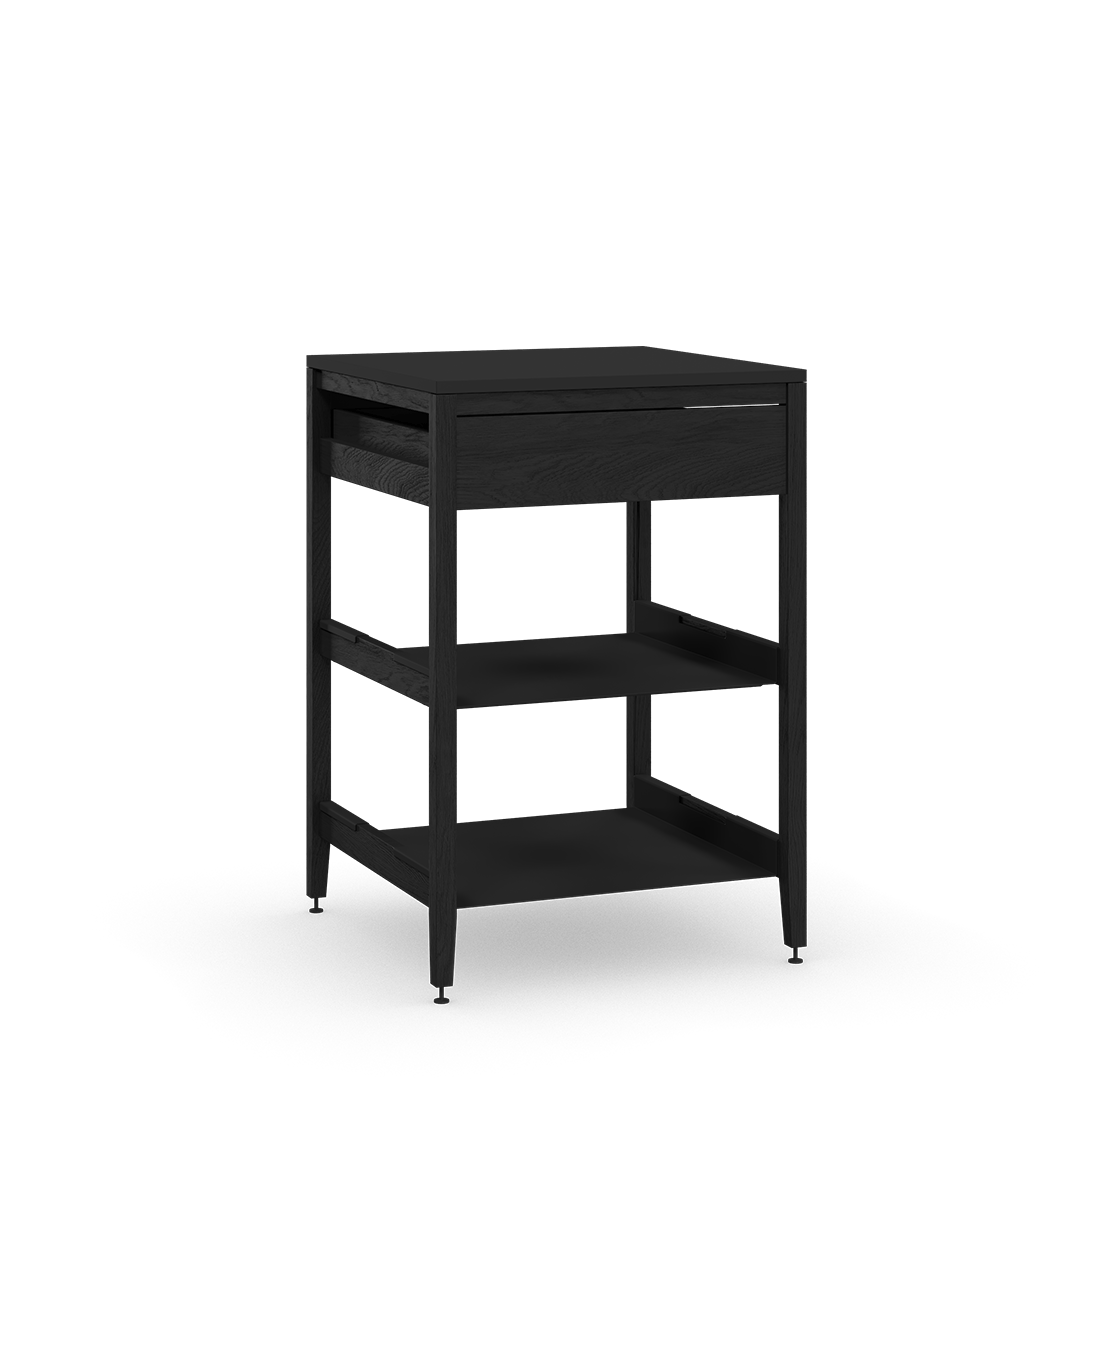 coquo radix midnight black stained oak solid wood modular 2 shelves 1 drawer base kitchen cabinet 24 inch C1-C-24SB-1022-BK